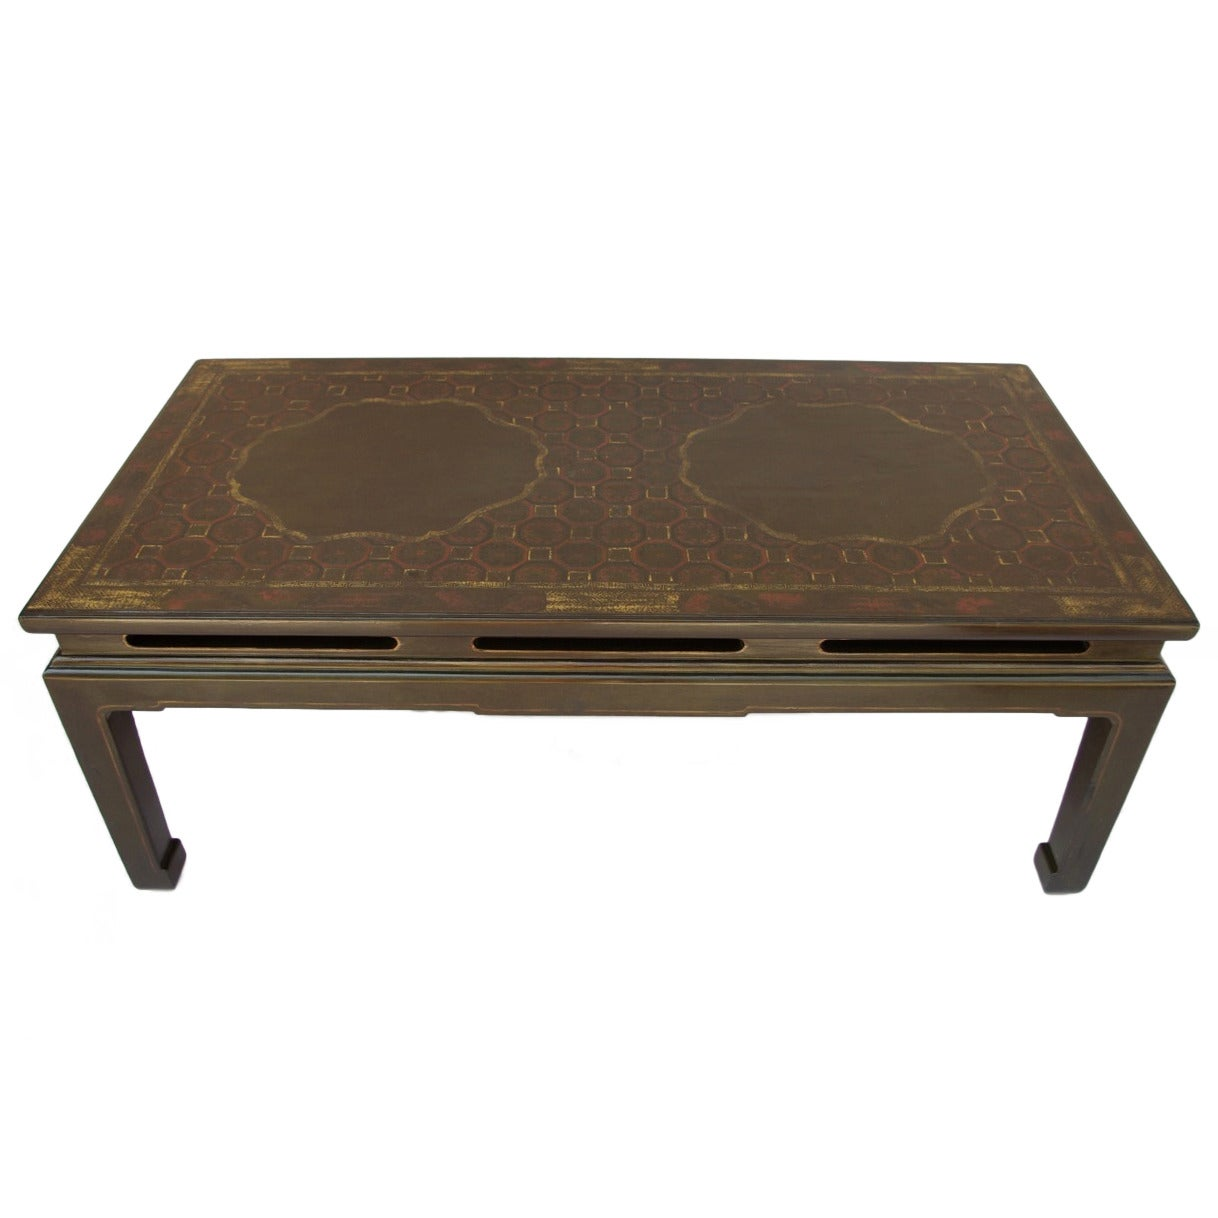 unusual olive green chinese lacquered coffee table 1950 for sale at 1stdibs. Black Bedroom Furniture Sets. Home Design Ideas